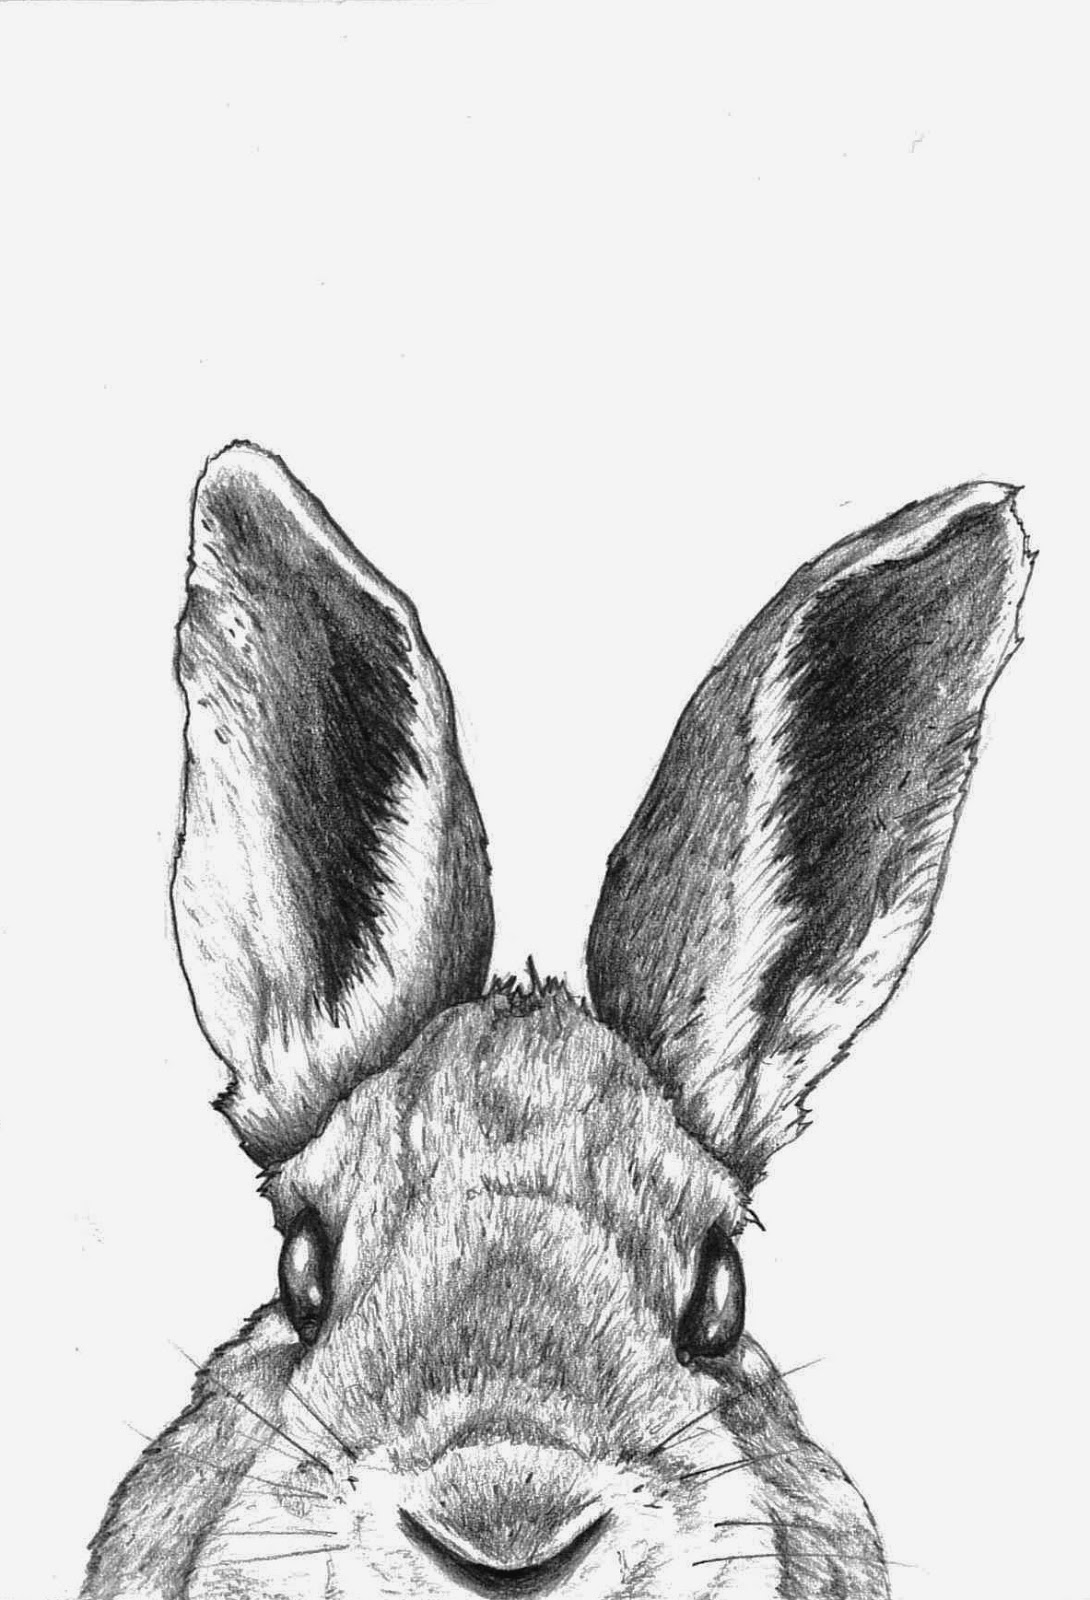 inkspired musings: B is for Bunny